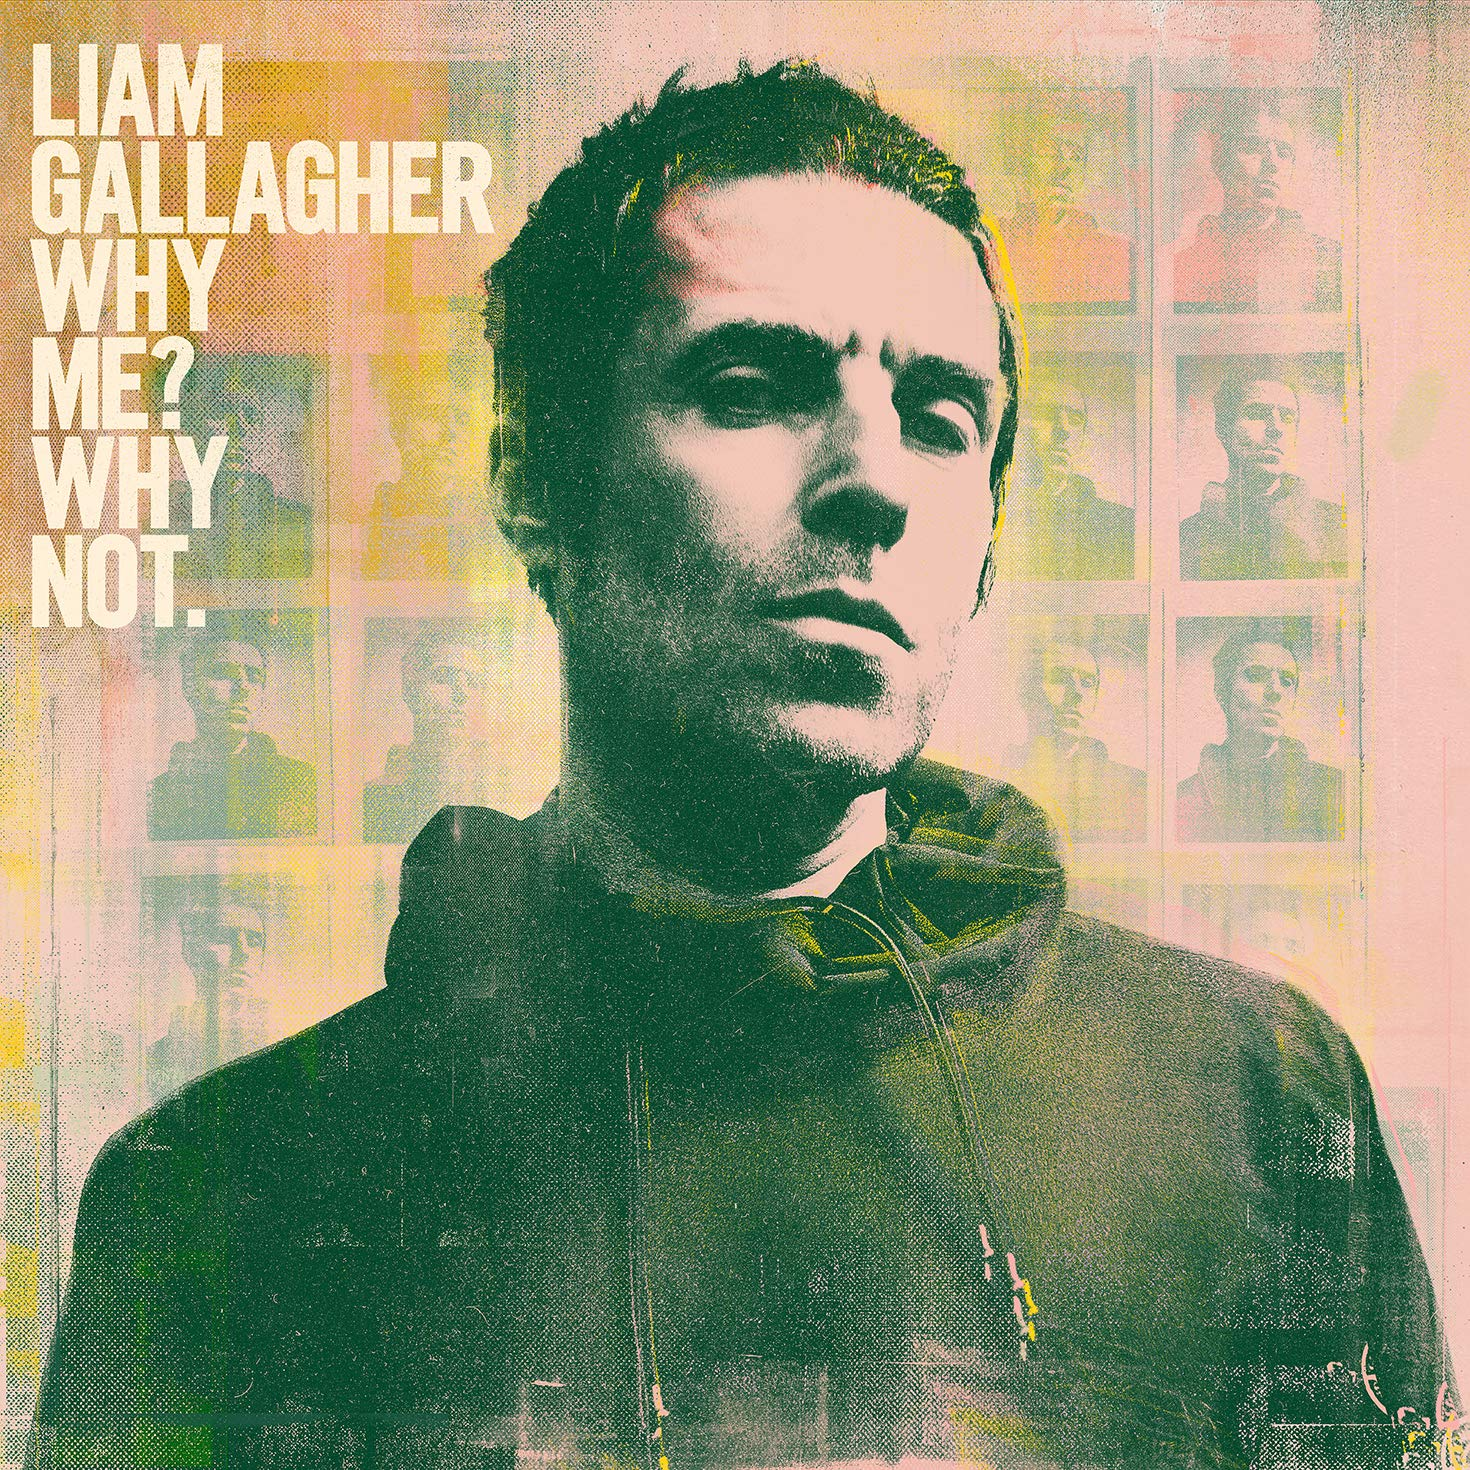 boom reviews -why me? why not by Liam Gallagher